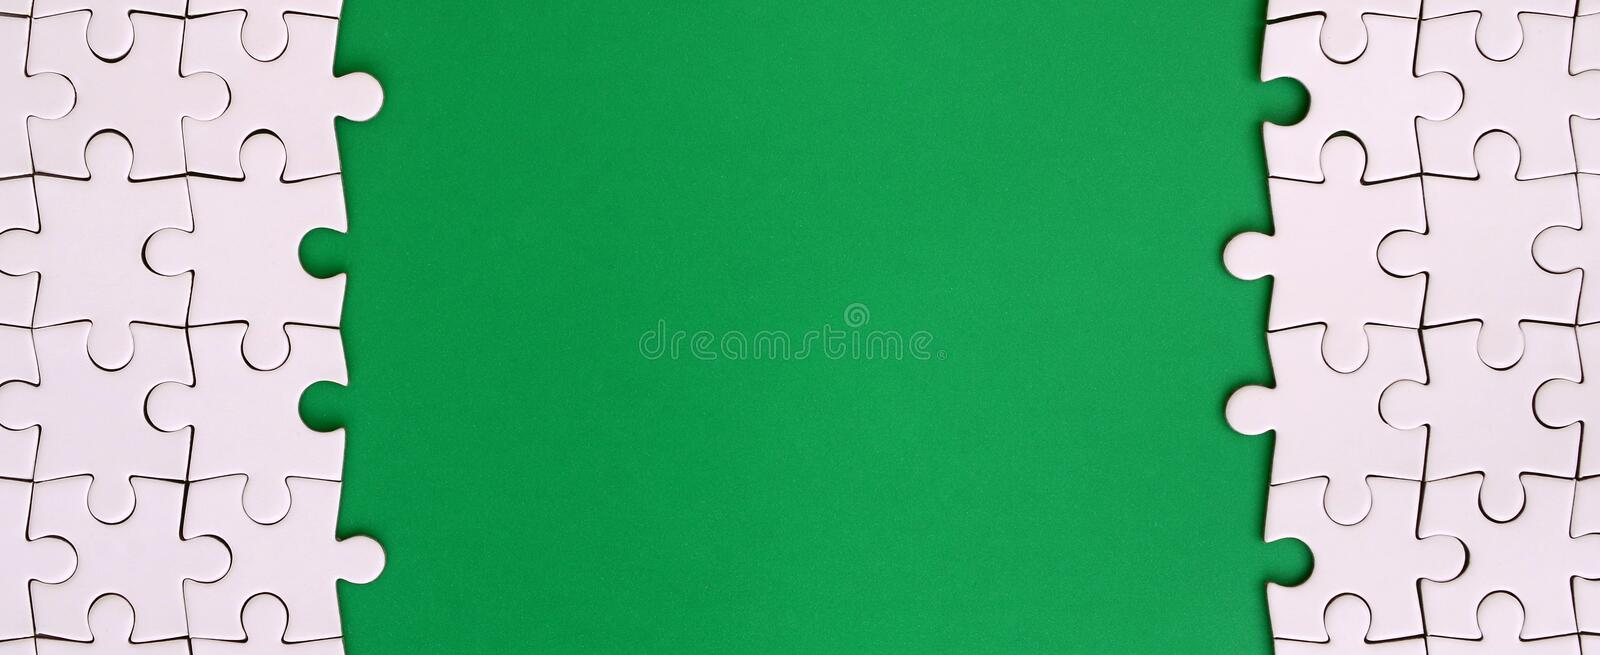 Fragment of a folded white jigsaw puzzle on the background of a green plastic surface. Texture photo with copy space for text.  stock images